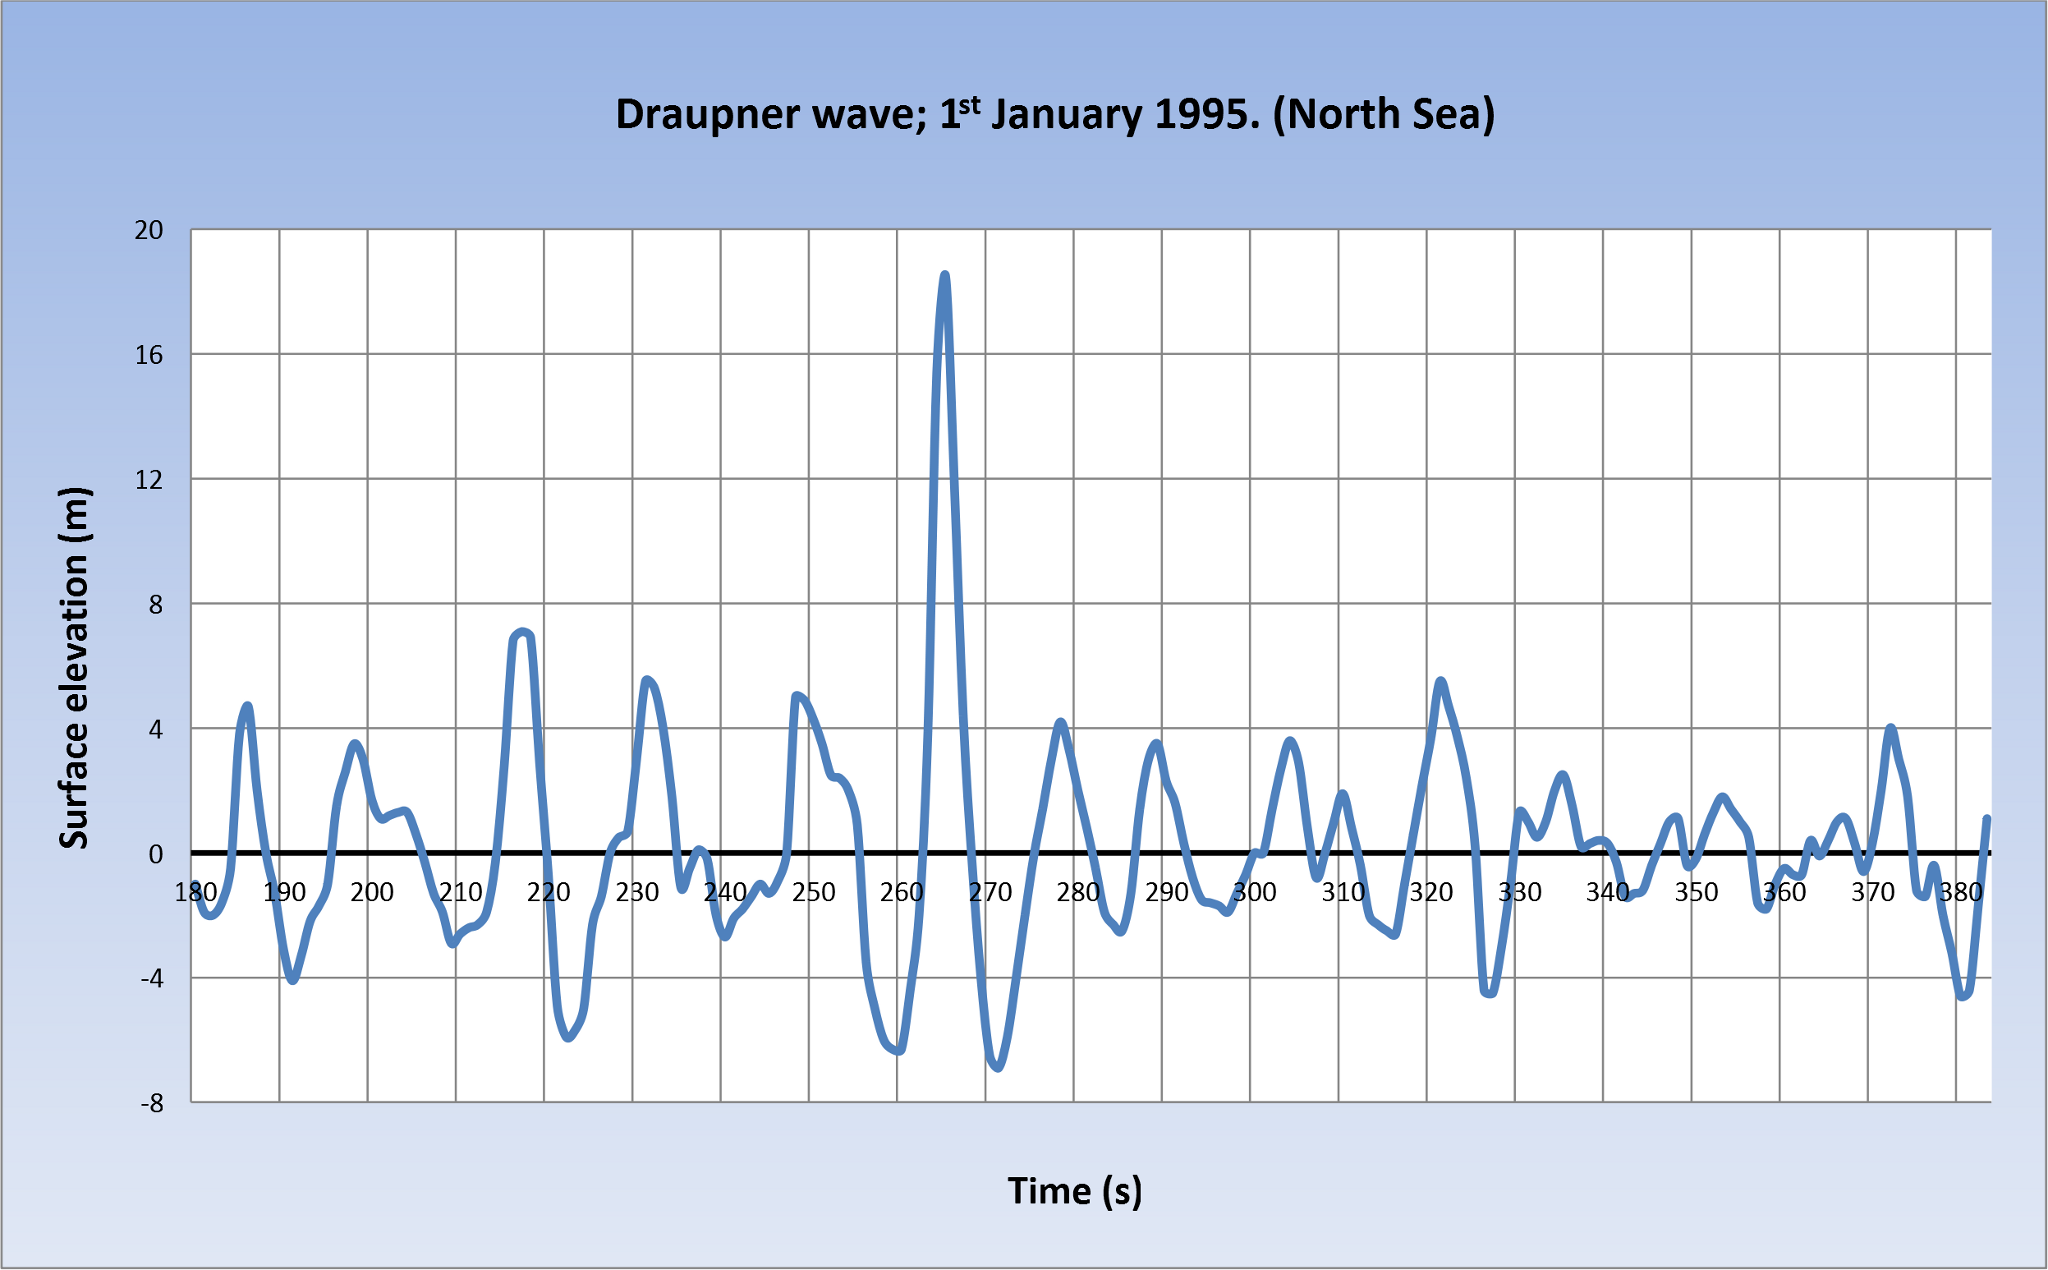 Freak wave that hit the Draupner E platform in the North Sea on 1st January 1995 Source: Wikimedia